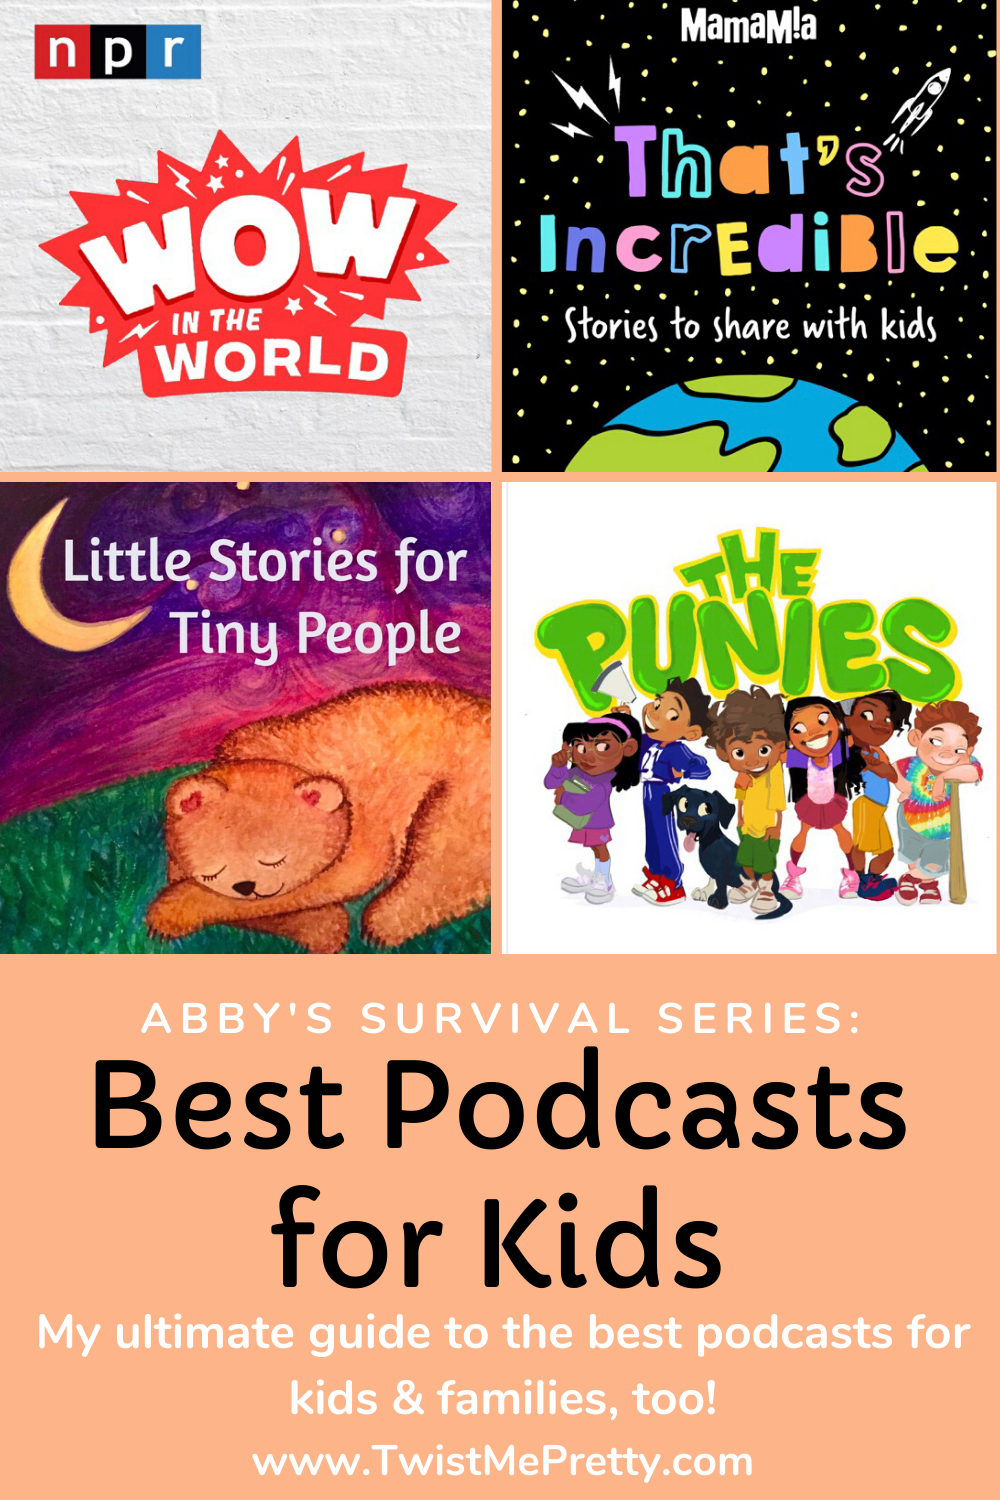 Abby's Survival Series- Best Podcasts for Kids. My ultimate guide to the best podcasts for your kids & your family, too! www.TwistMePretty.com